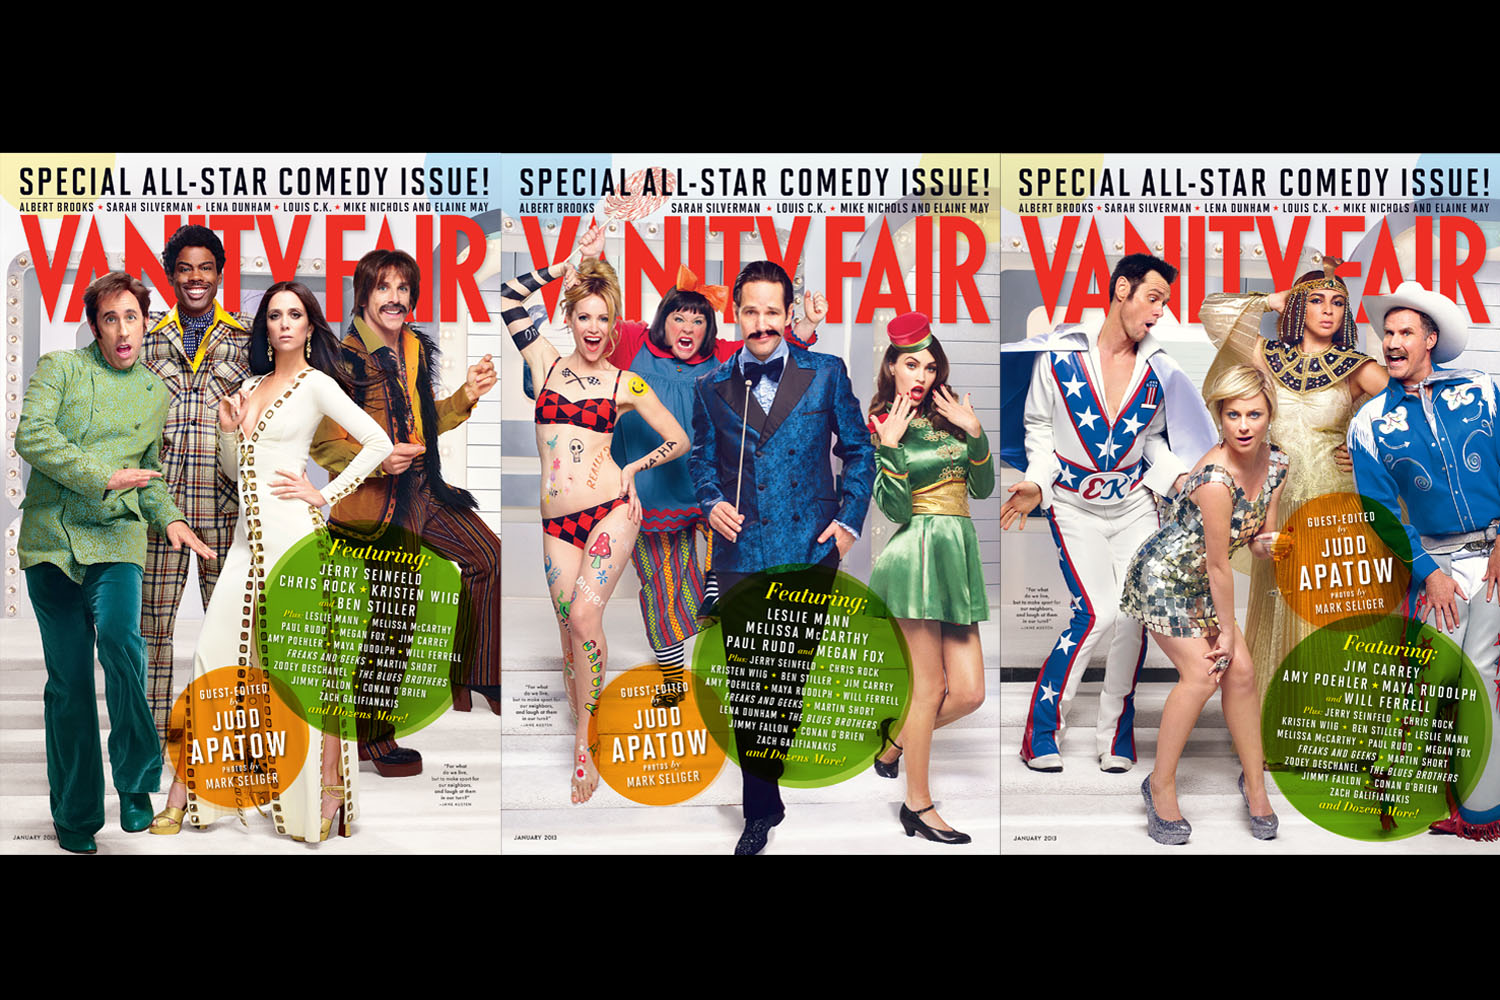 Vanity Fair, December 2012. Photographs by Mark Seliger.I met with Judd Apatow, who guest edited the issue, in June and presented a bunch of ideas to him. He wanted the covers to feel classic, but have a real kinetic energy to it, so the viewer would laugh and have a lively experience. We came up with the idea of recreating the variety shows of the '70s—the game show host with the slick hair, the women dressed up as sexy bunnies—and photographed everyone together for the most part, which was great because all the actors ended up playing off each other. Judd had specific ideas about what he wanted, and I had my own ideas, and then we went to Colleen Atwood, an amazing costume designer who's worked with Tim Burton, among others, to map these ideas. We took them to the comedians and said,  How would you like to be a gay disco cowboy?  Or,  You're going to be Evel Knievel—how do you feel about that?  The more enthusiasm we got from people, the more excited we became. In the end, I think these covers became a pretty comprehensive look at the world of comedy as it is now. The photographs really complemented the writing, but the covers are really about a high energy, '70s, super-fun party.-Mark Seliger, PhotographerActually, [my wife] Leslie Mann thought of the idea. We went online and looked at a ton of Vanity Fair covers and tried to think of something unique. She had the idea of doing something big and bright, like those big pictures of Goldie Hawn from Laugh-In. That led to an idea of a cover that encapsulated all of those variety shows from the 60s and early 70s. We didn't want it to be a straight parody, but a bizarre combination of of people dressed like those characters and others where you weren't really sure who they were. The complicated part was coming up with all of the costumes and getting all the comedians to sign off on the idea. I work with comedians so often that I knew I had to talk to them weeks in advance—each costume is a joke, so they have to like th